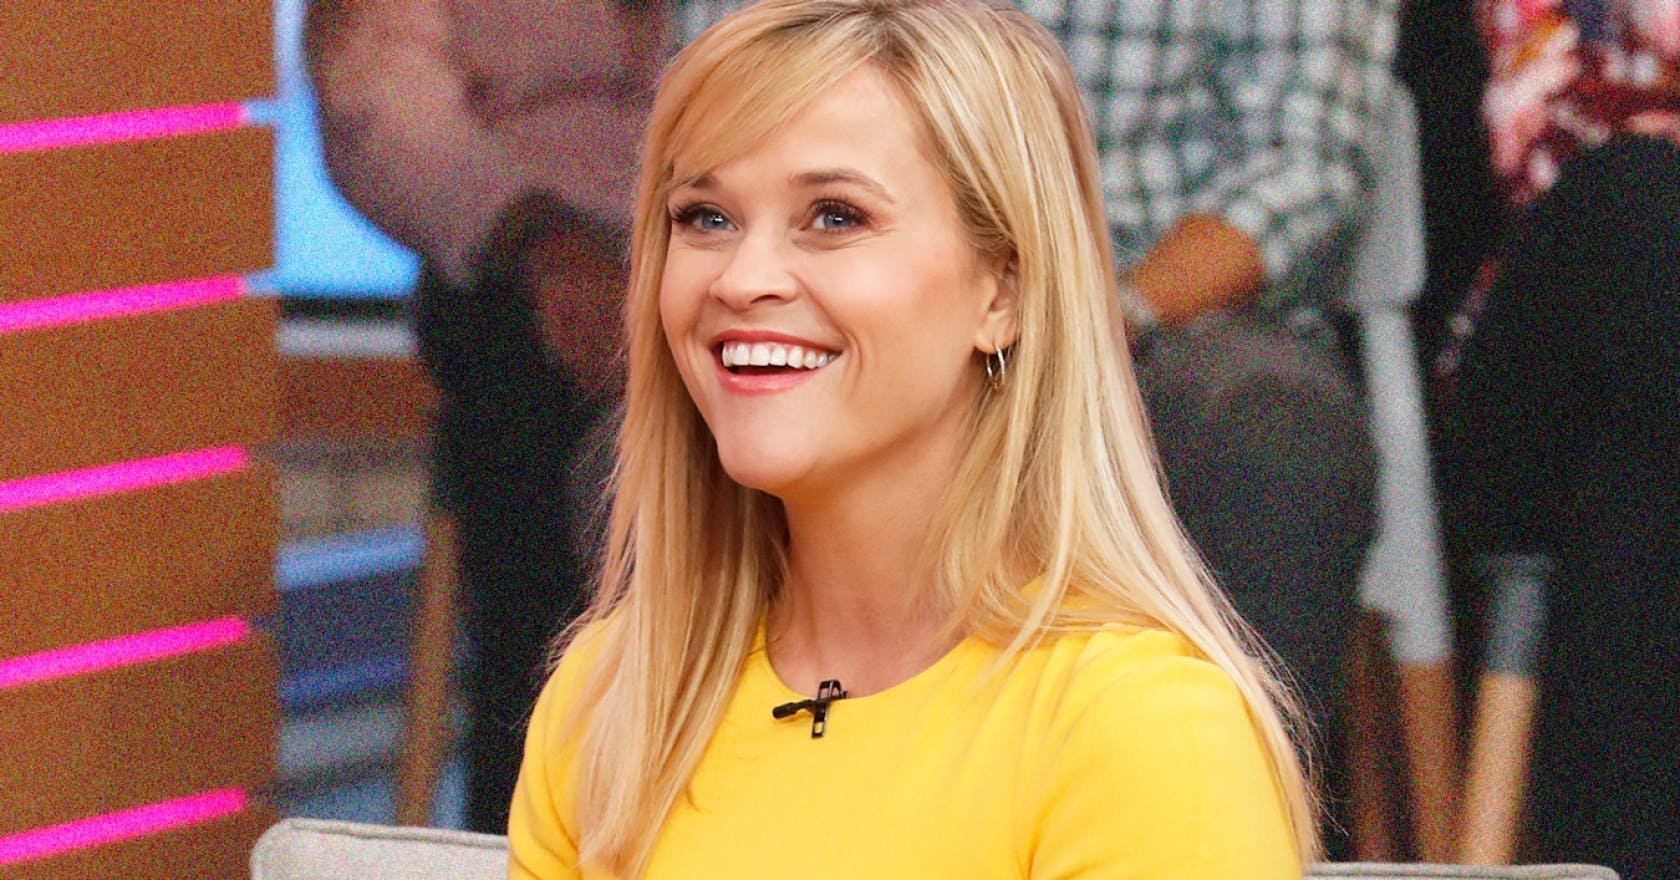 Reese Witherspoon gave us a sneak peek at her new television show and it looks so good